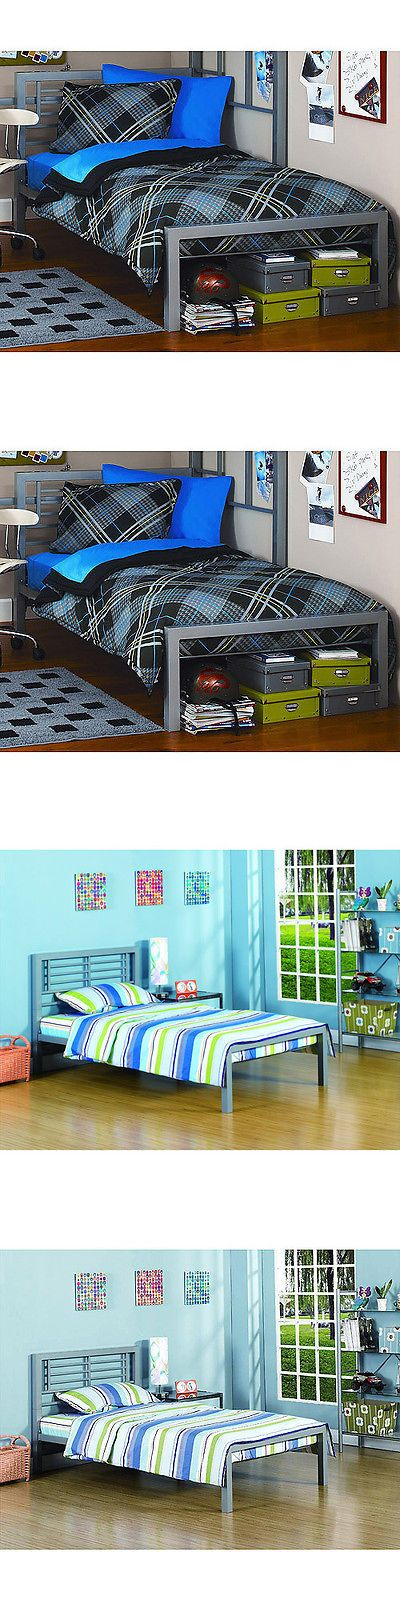 Beds and Bed Frames 175758: Metal Twin Size Bed Frame Platform Bedroom Furniture Headboard Kids Black New -> BUY IT NOW ONLY: $91.78 on eBay!